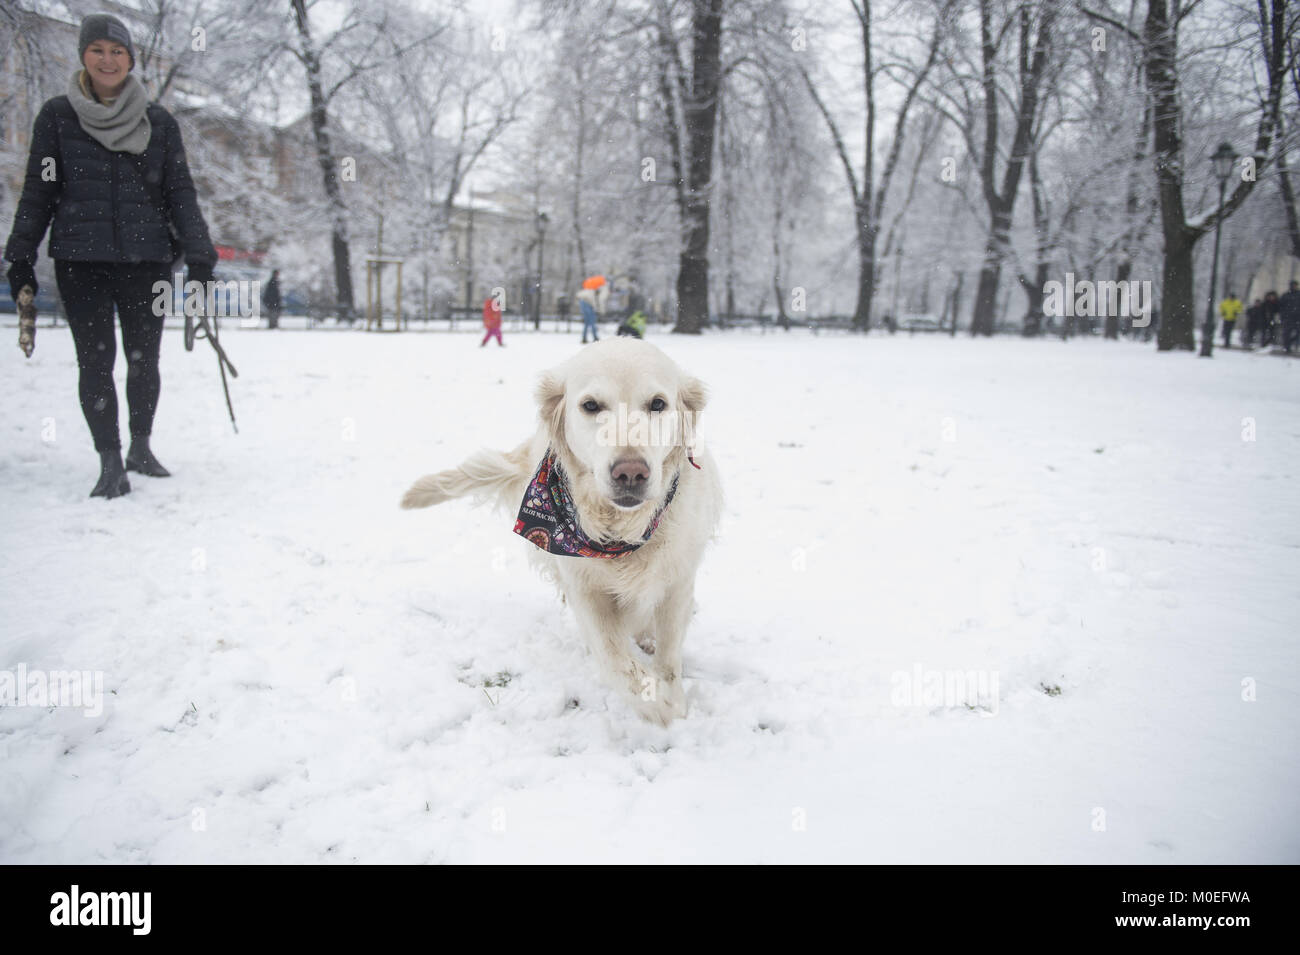 Krakow, Poland. 21st Jan, 2018. A dog plays in snow during winter in ...